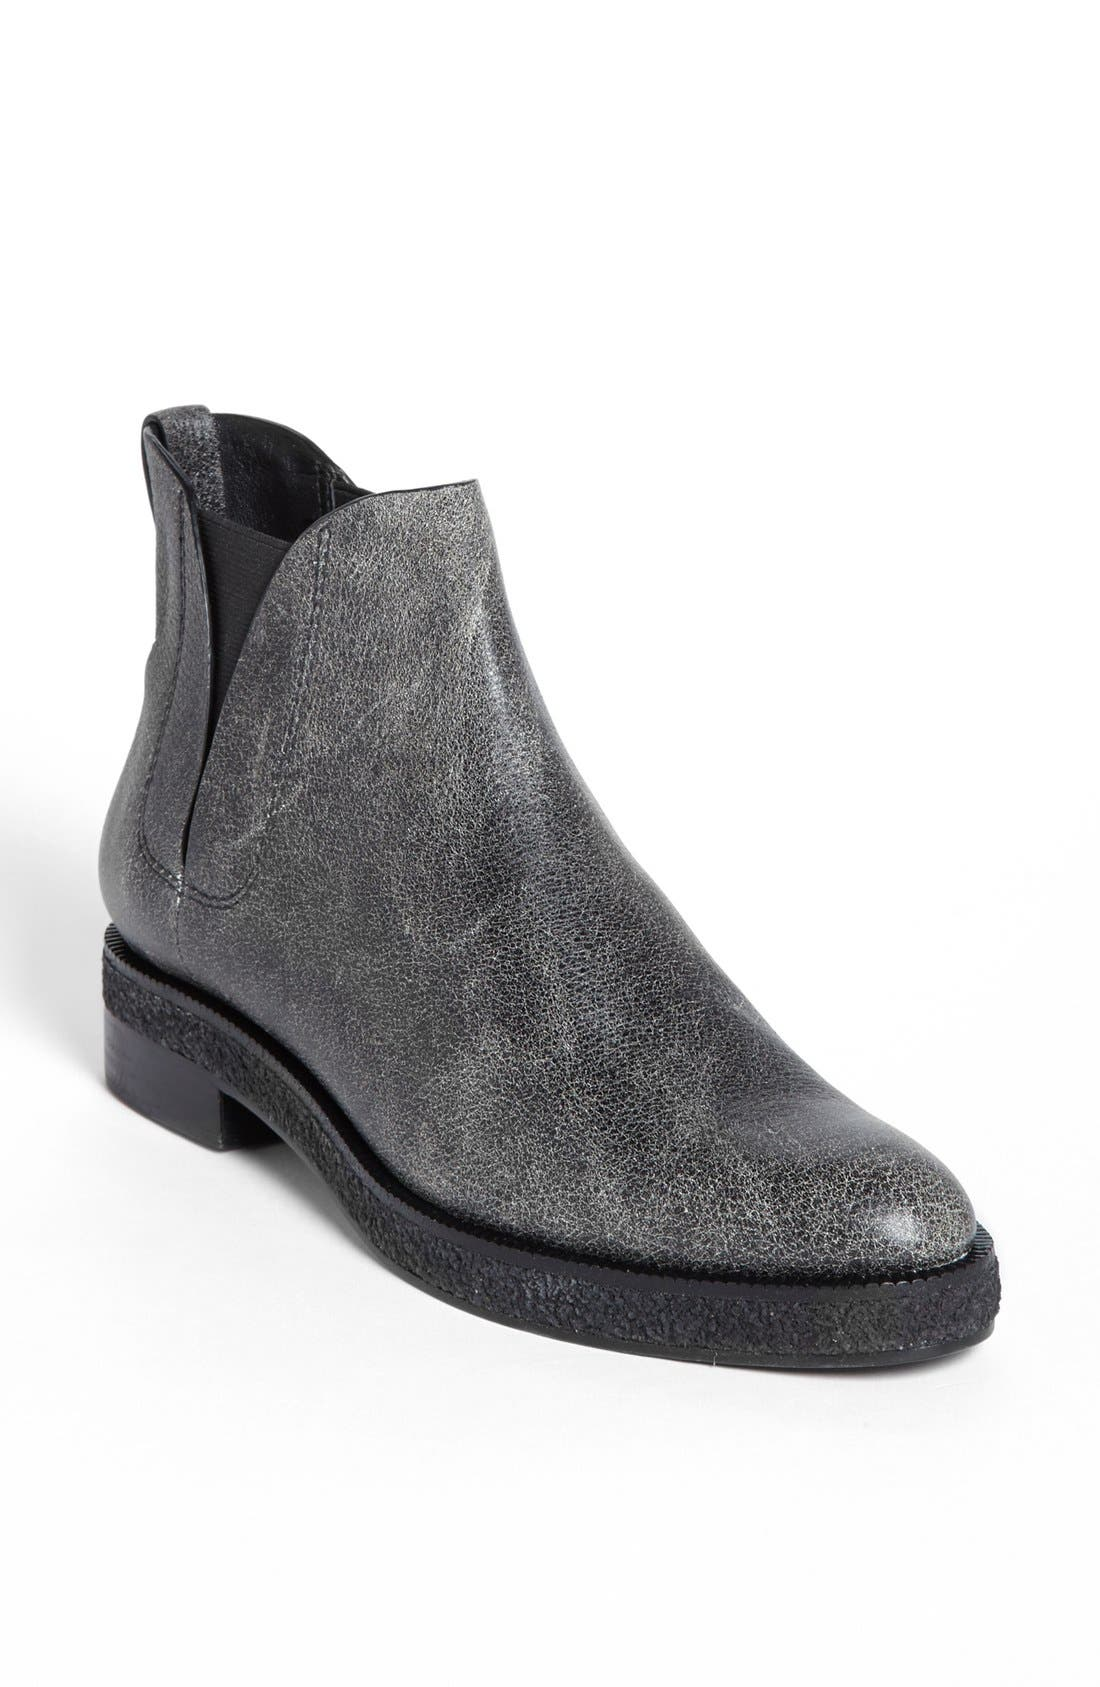 Alternate Image 1 Selected - Alexander Wang 'Dewi Chelsea' Boot